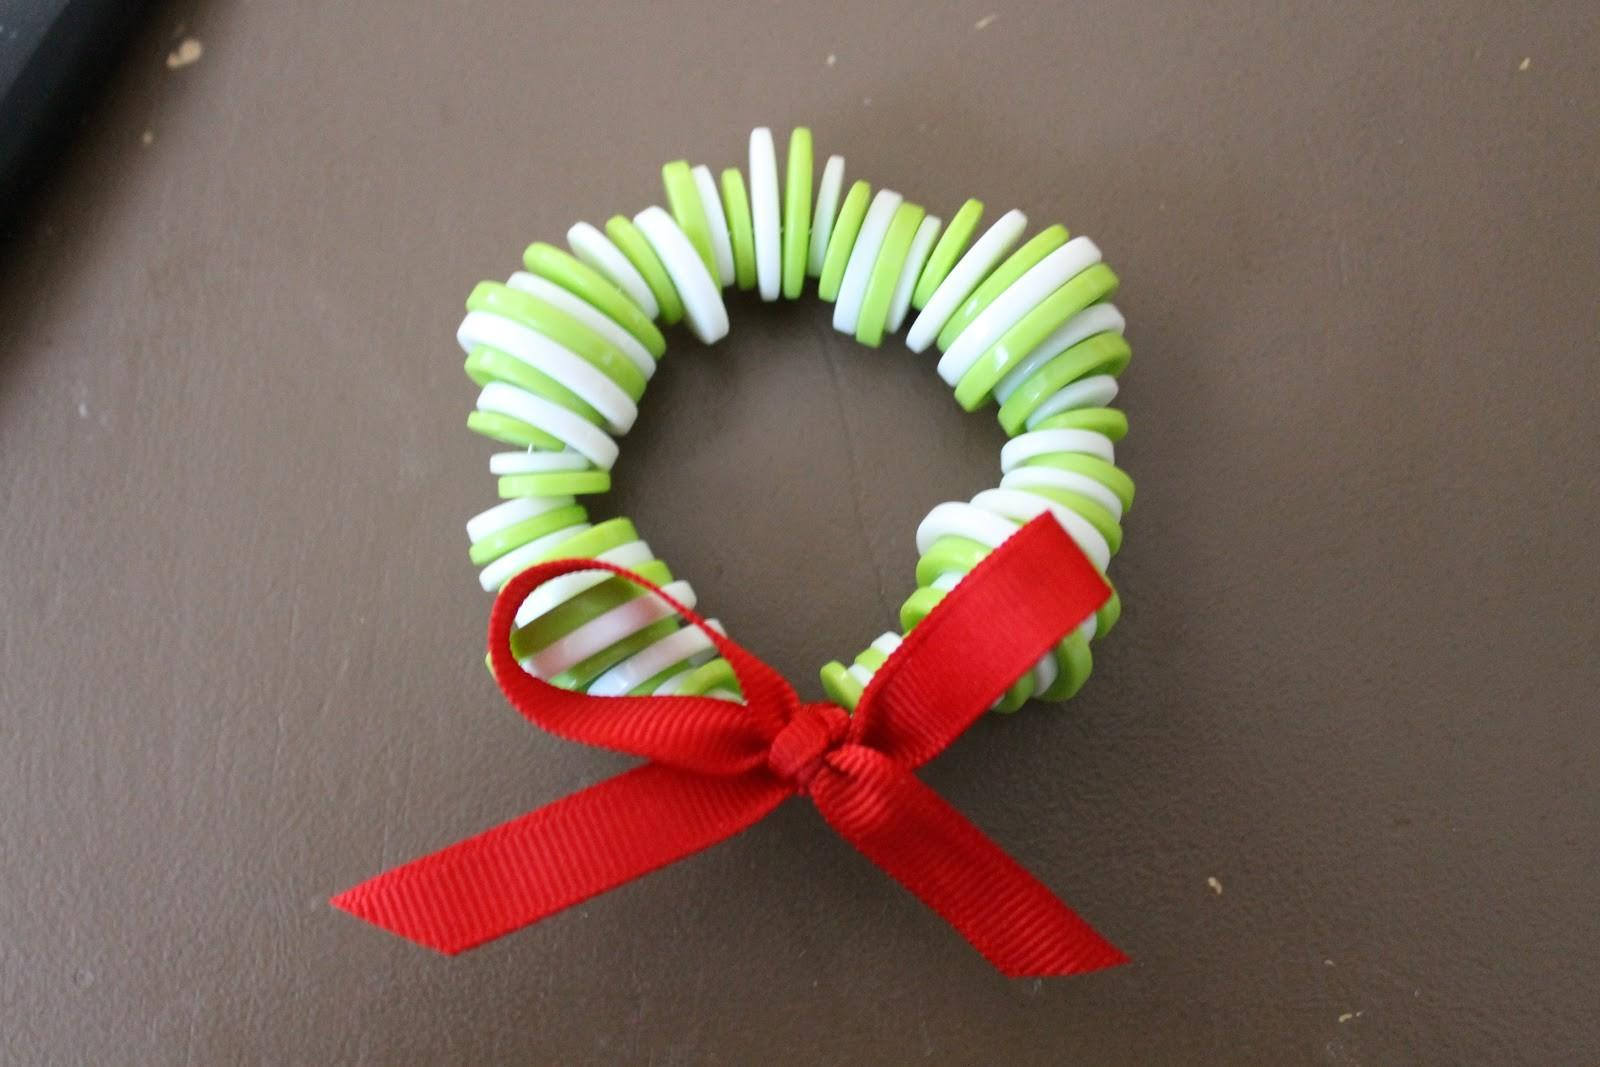 Diy Button Wreath Ornament White Lights Wednesday